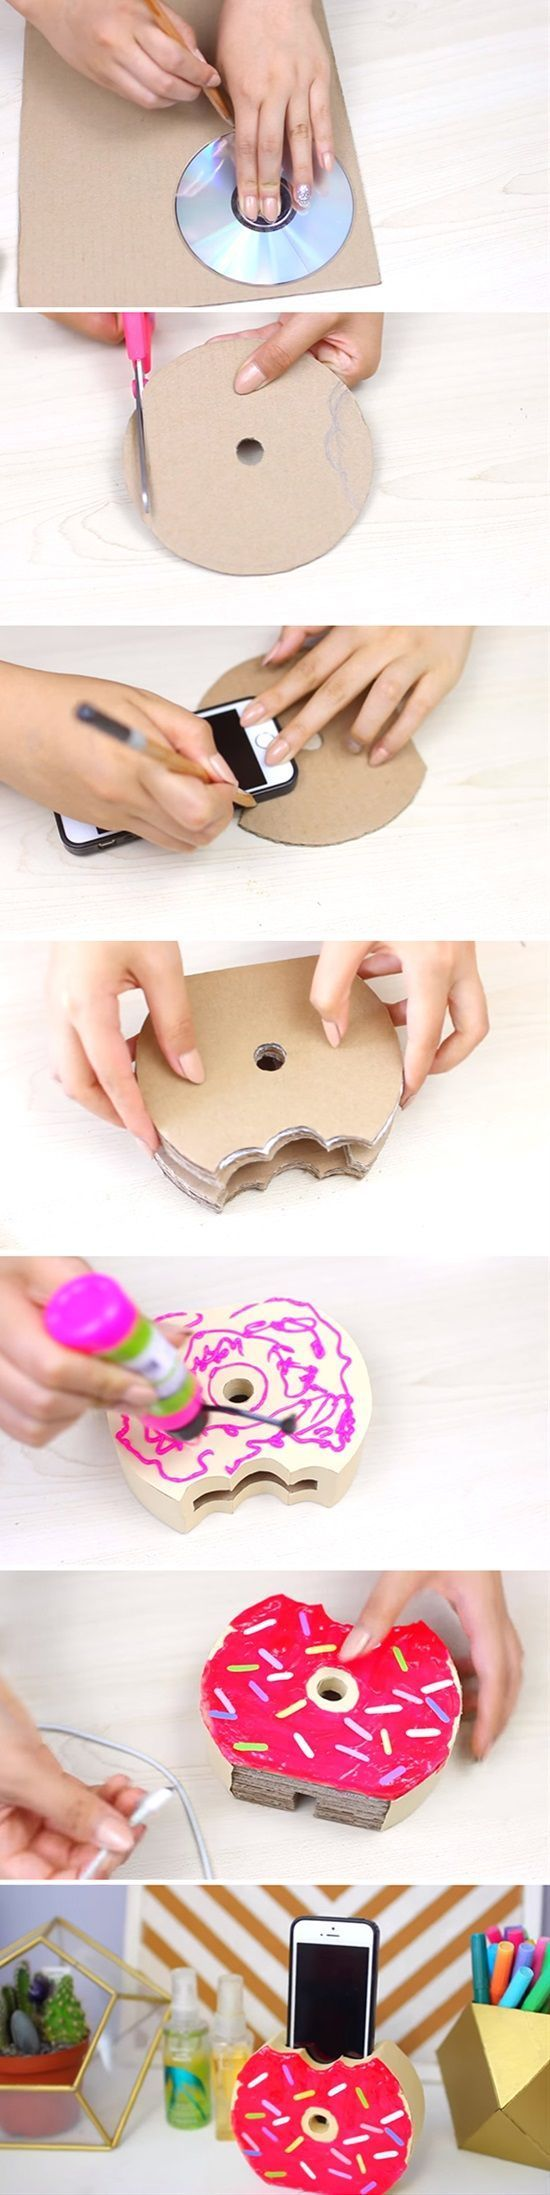 14 simple DIY accessories for your phone | Postri …